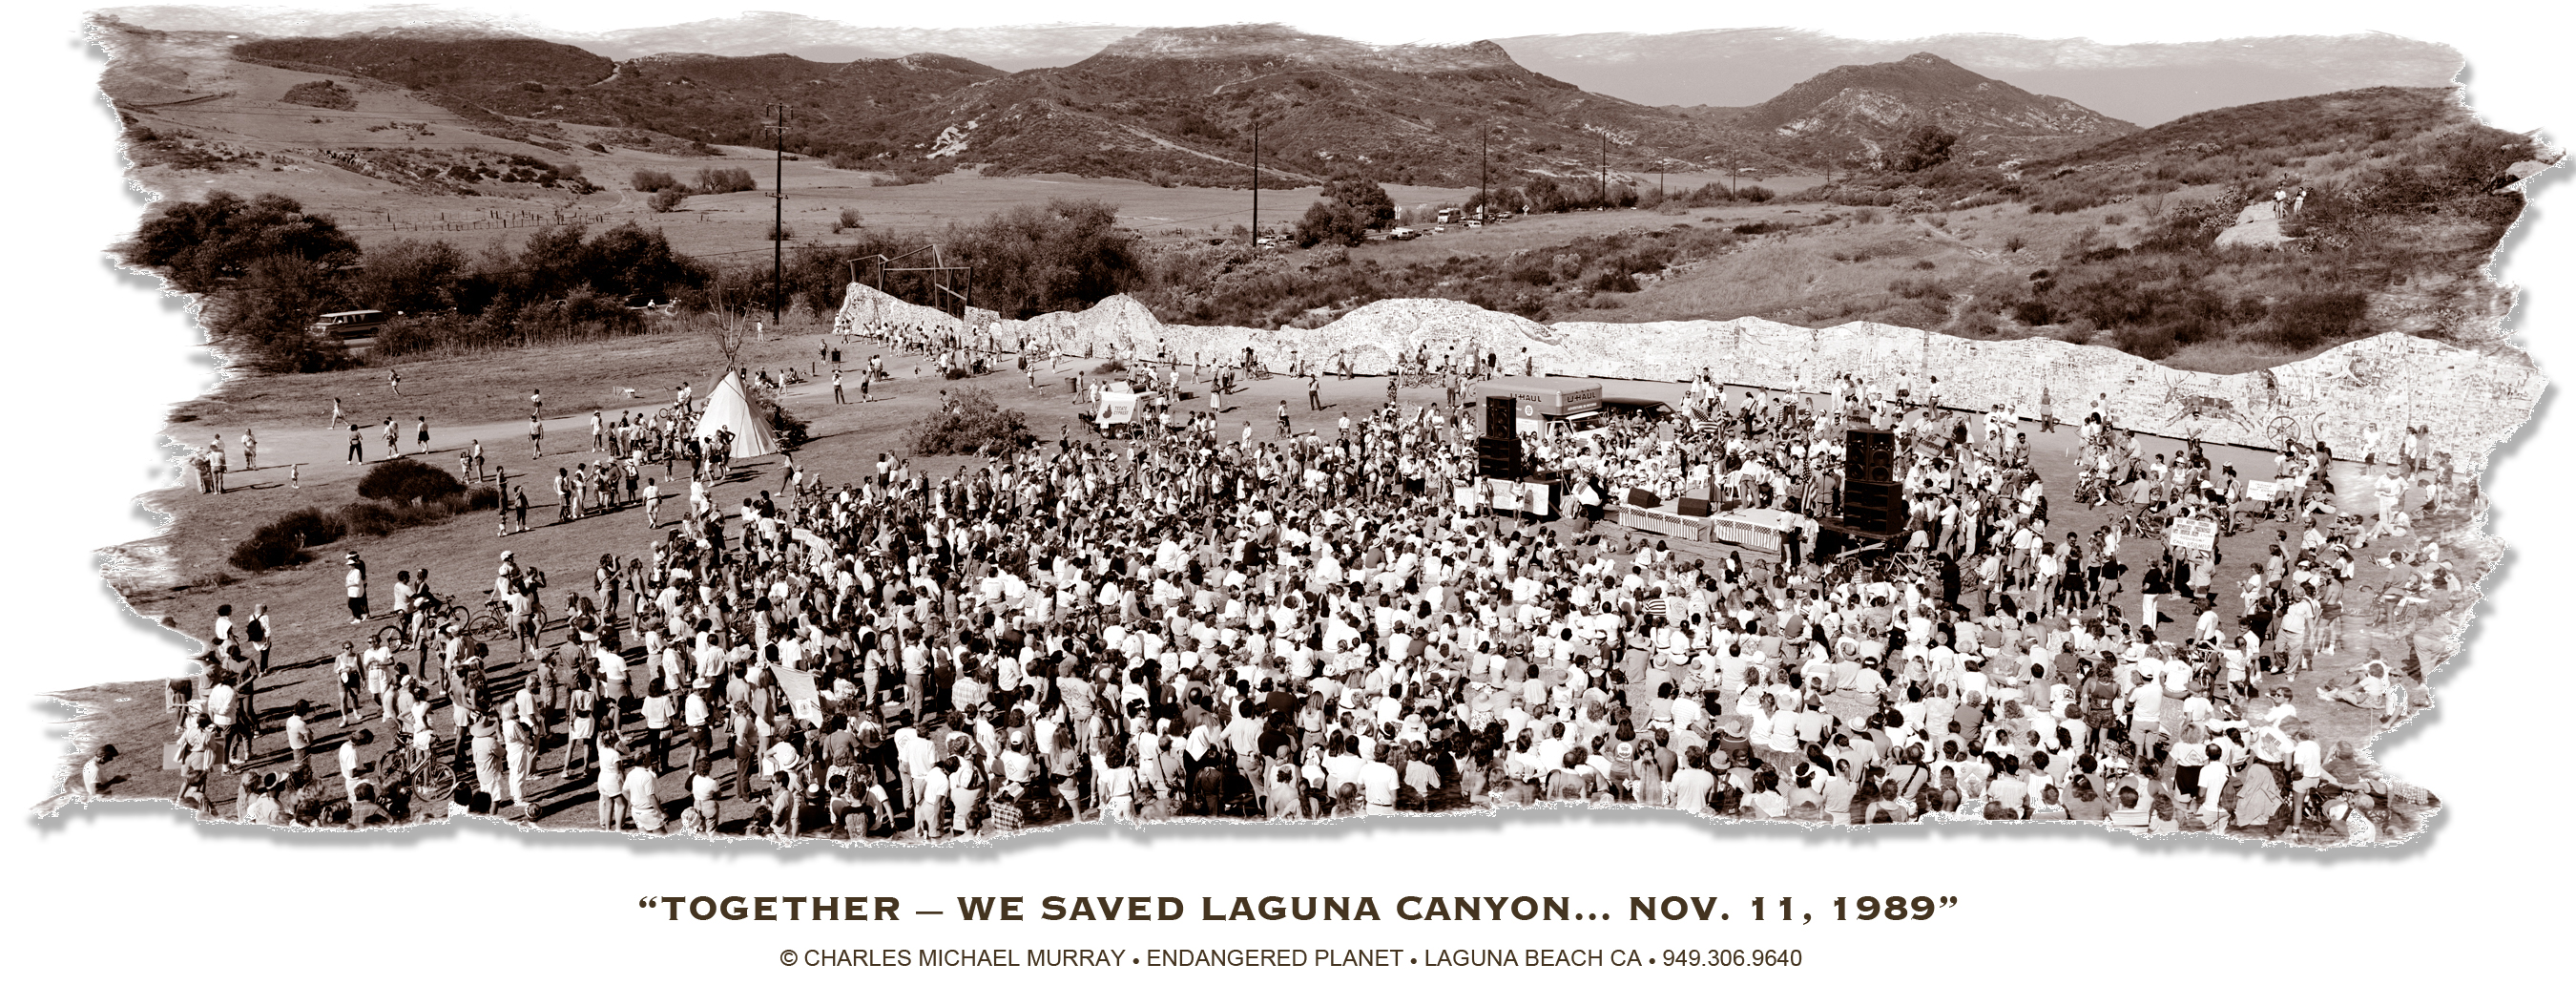 A rally of 7,500 people protesting development in Laguna Canyon halted an Irvine Company developing 25 years ago.